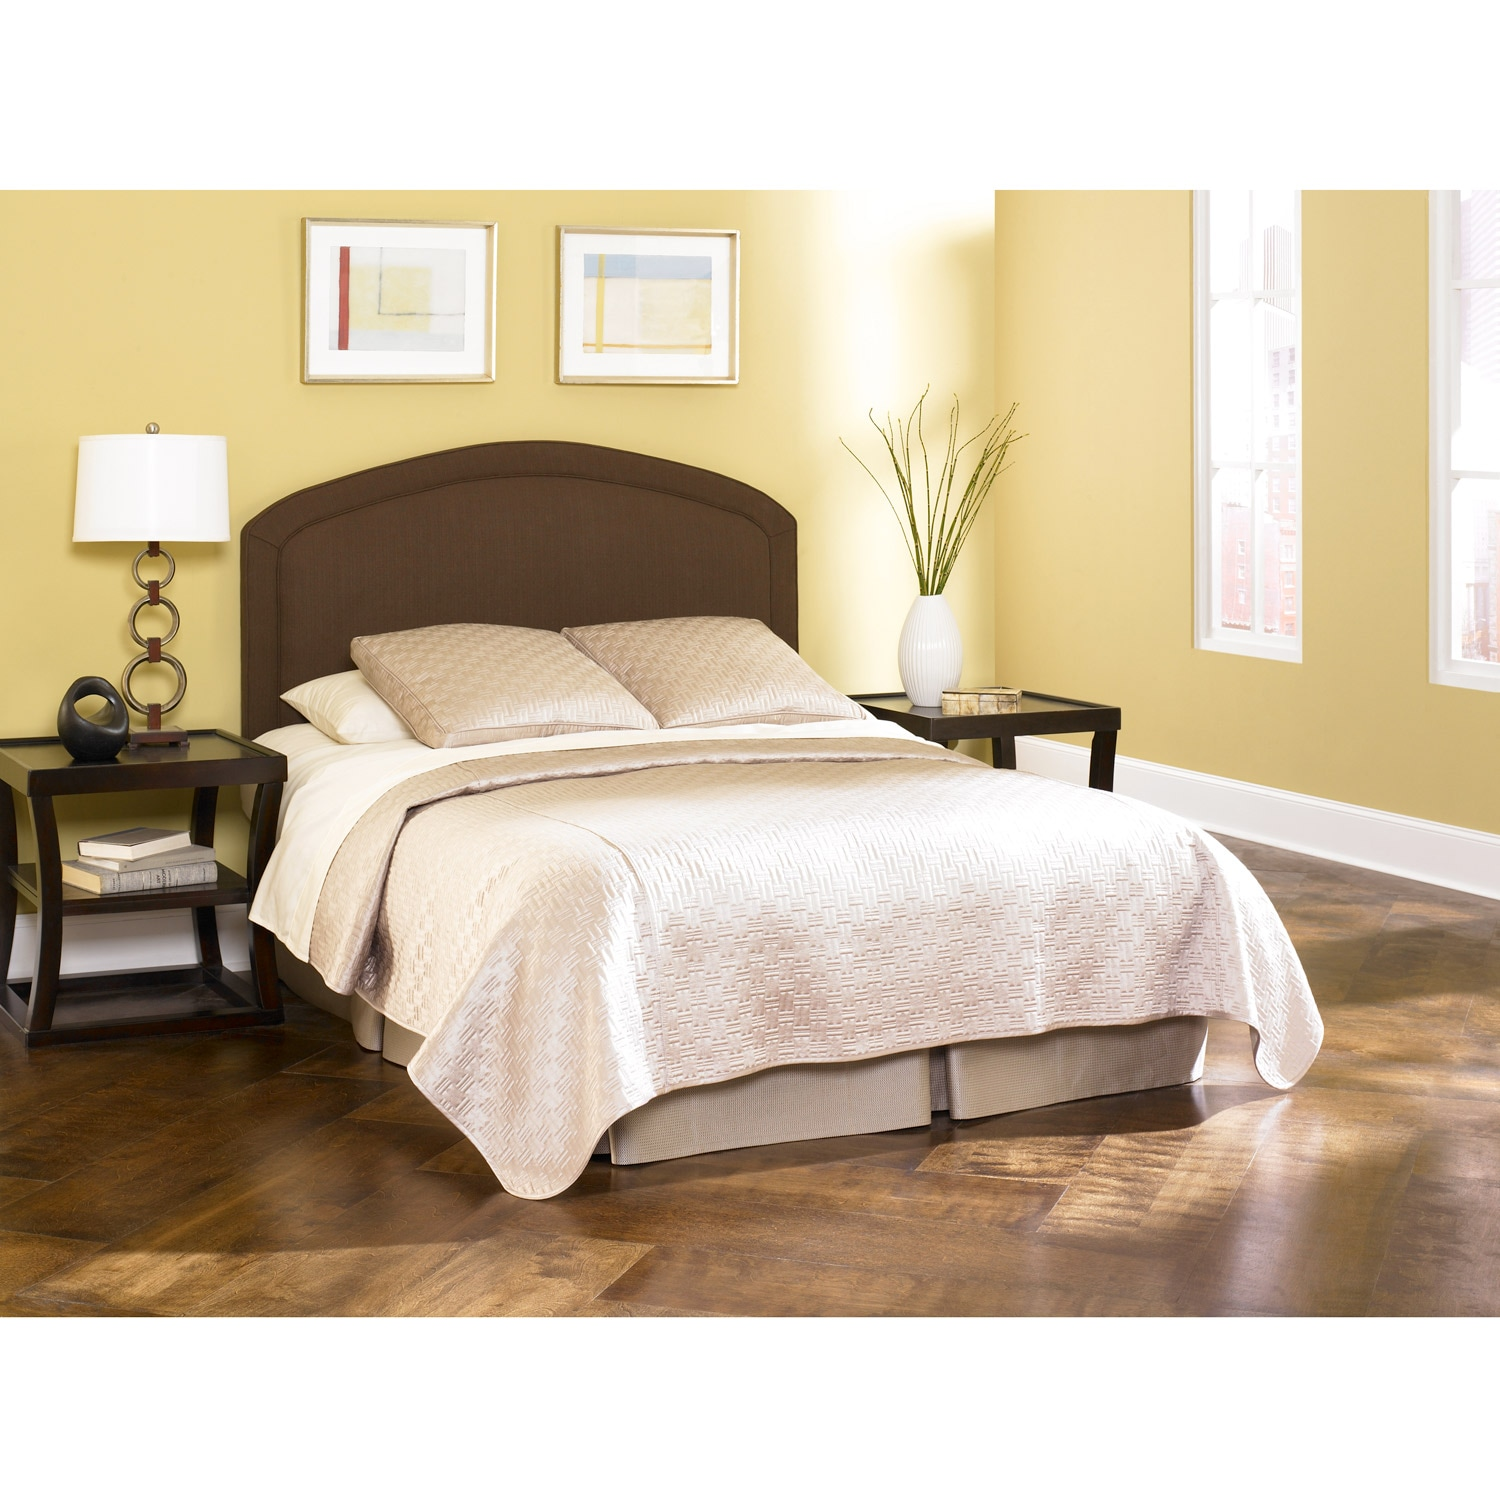 Cherbourg deep chocolate upholstered king cal king size for California king headboard